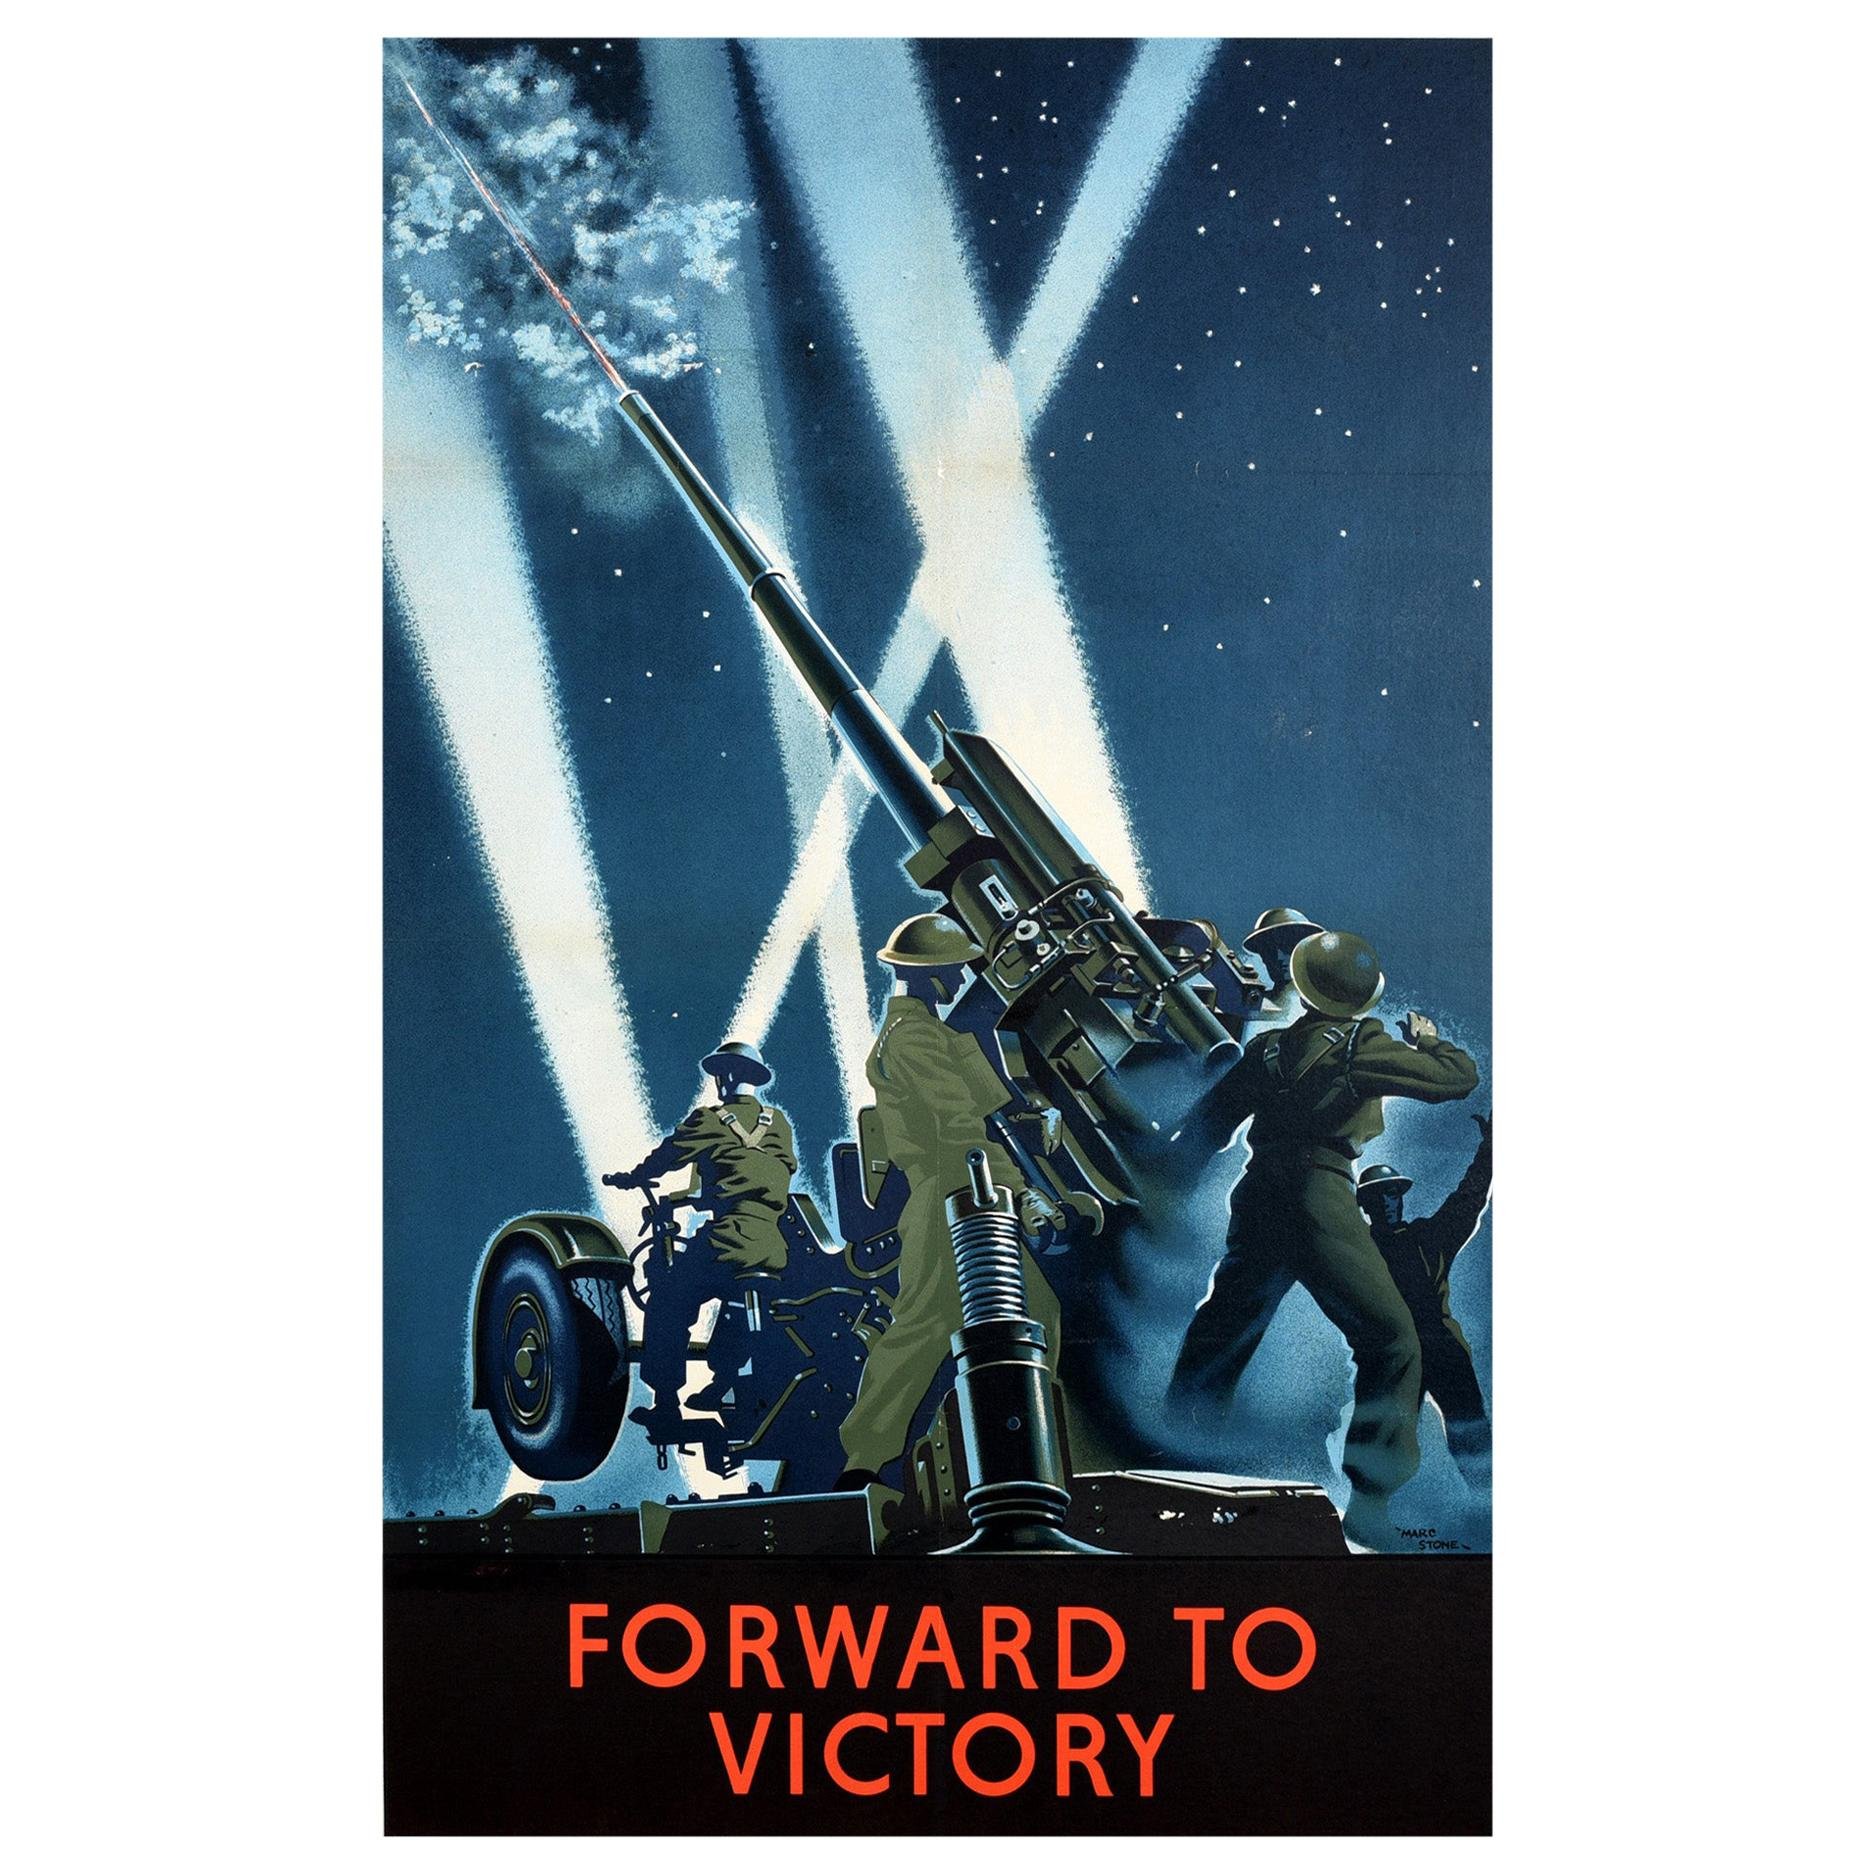 Original Vintage World War Two Poster Forward To Victory WWII Army Artillery Gun